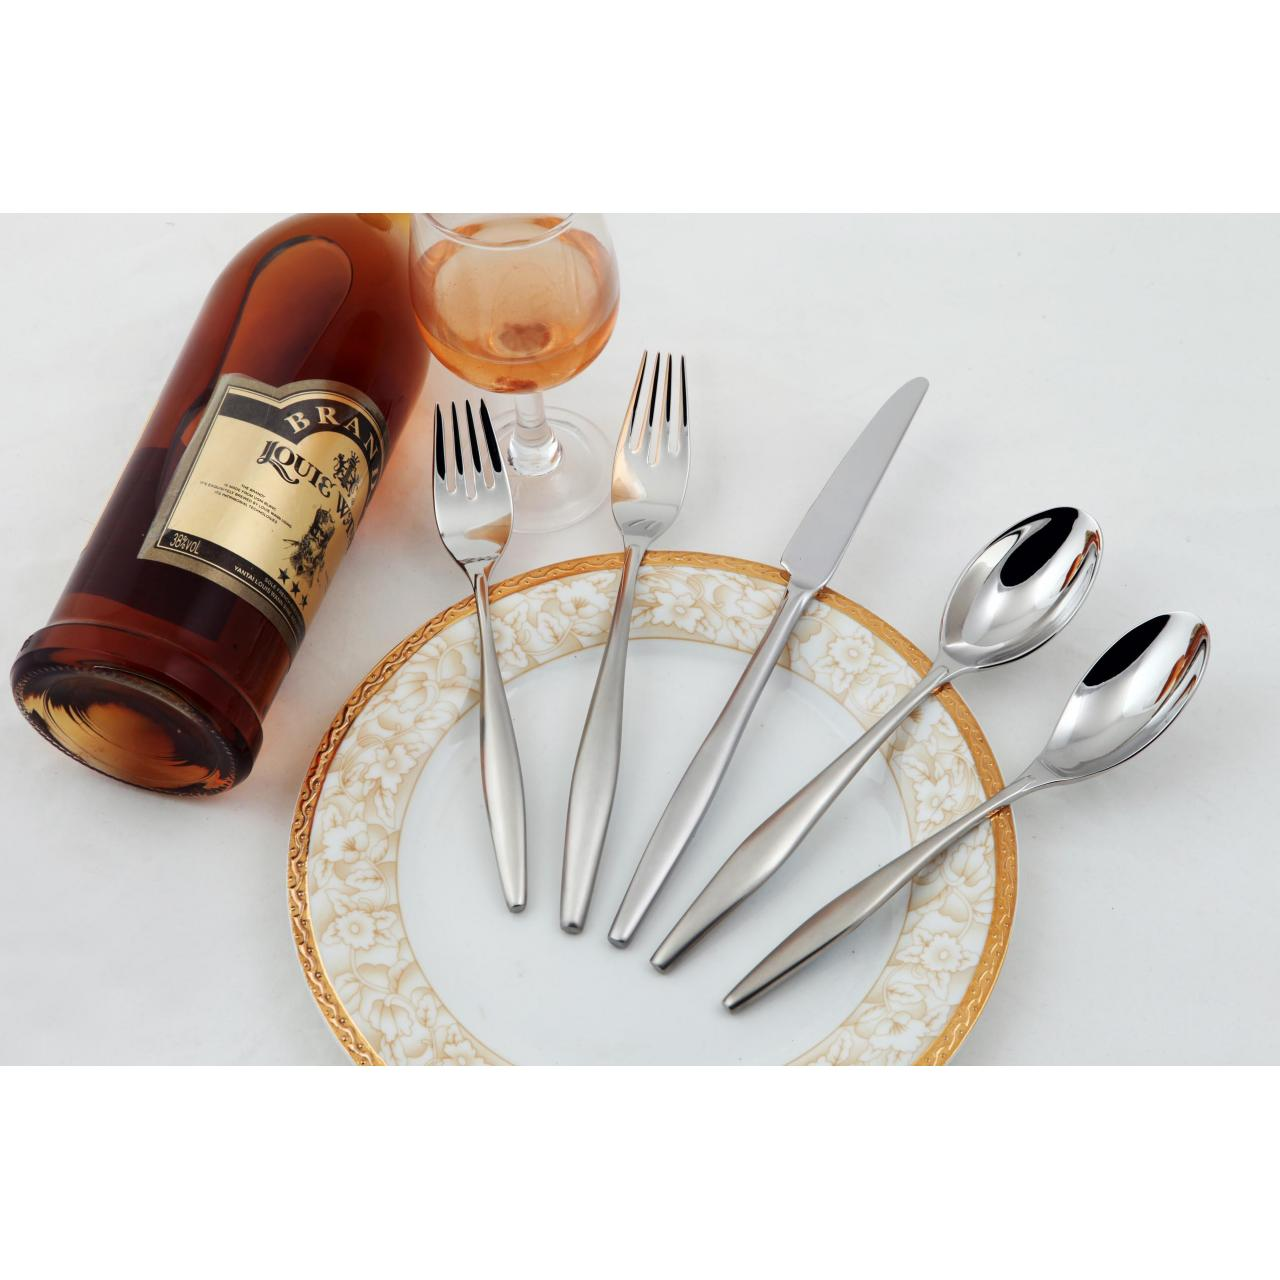 Quality Tableware And Utensil Number: T-16 for sale